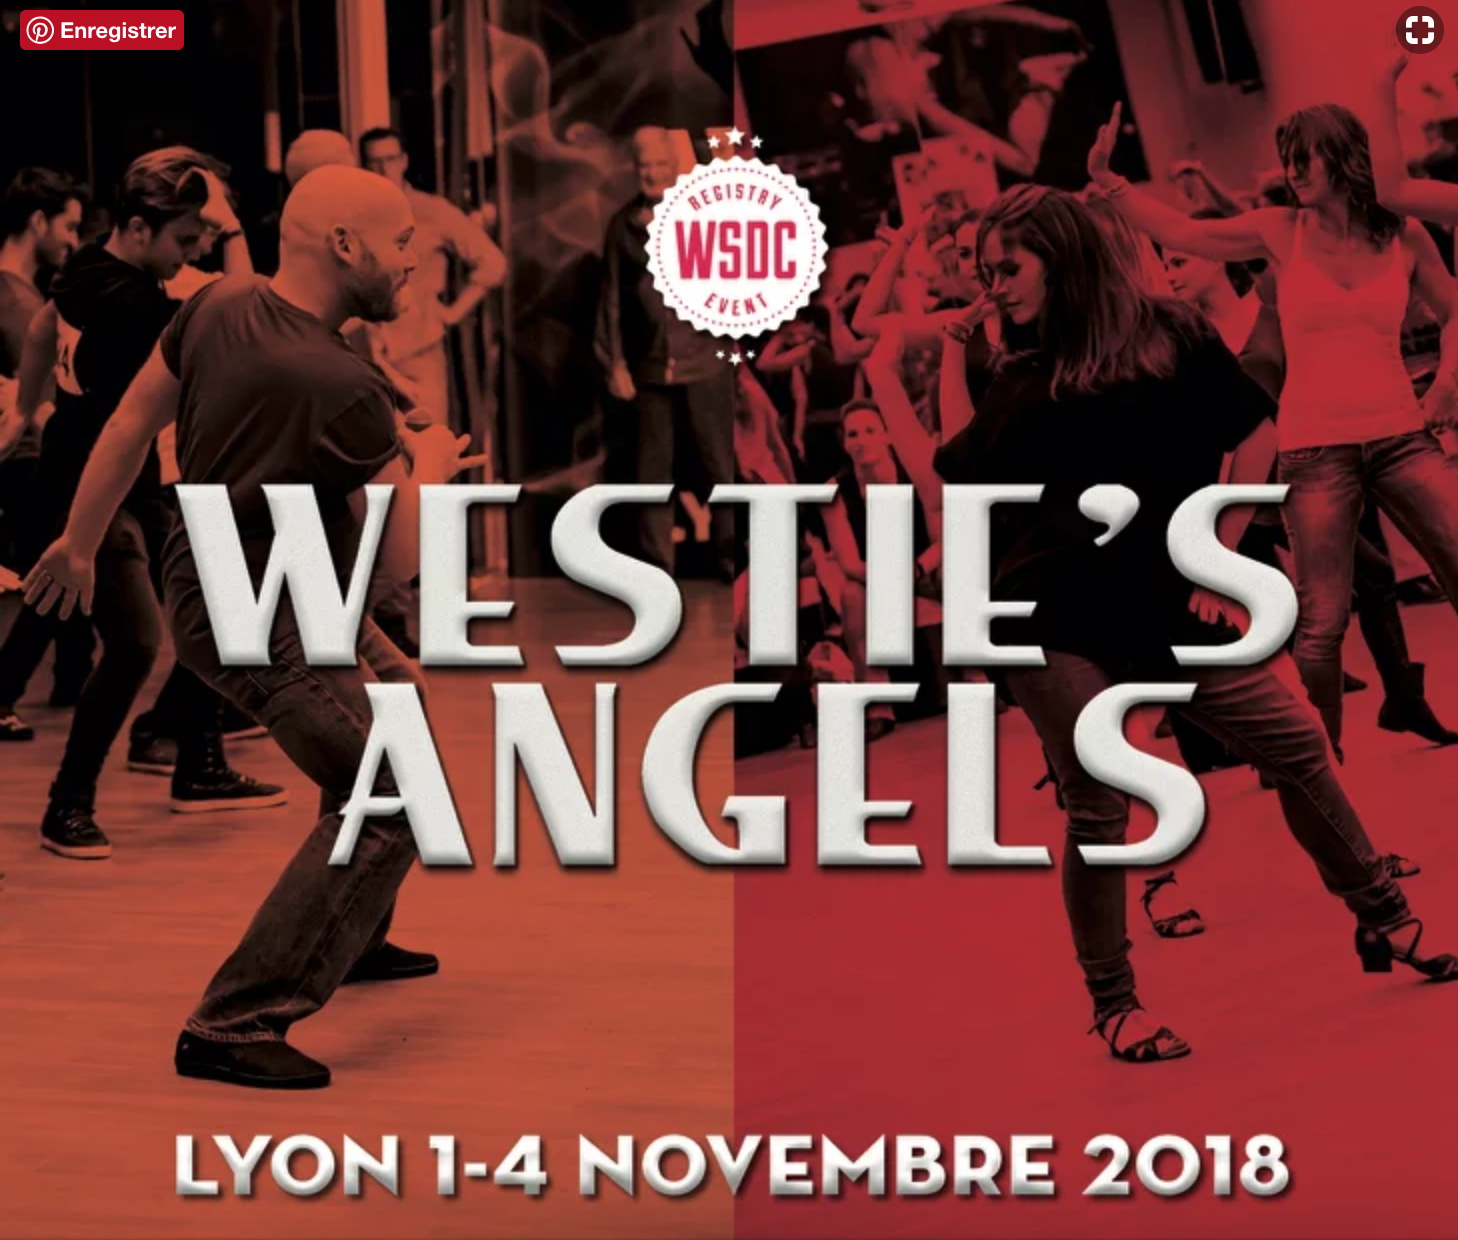 Westie's angels 2018 Lyon Novembre - West Coast Swing